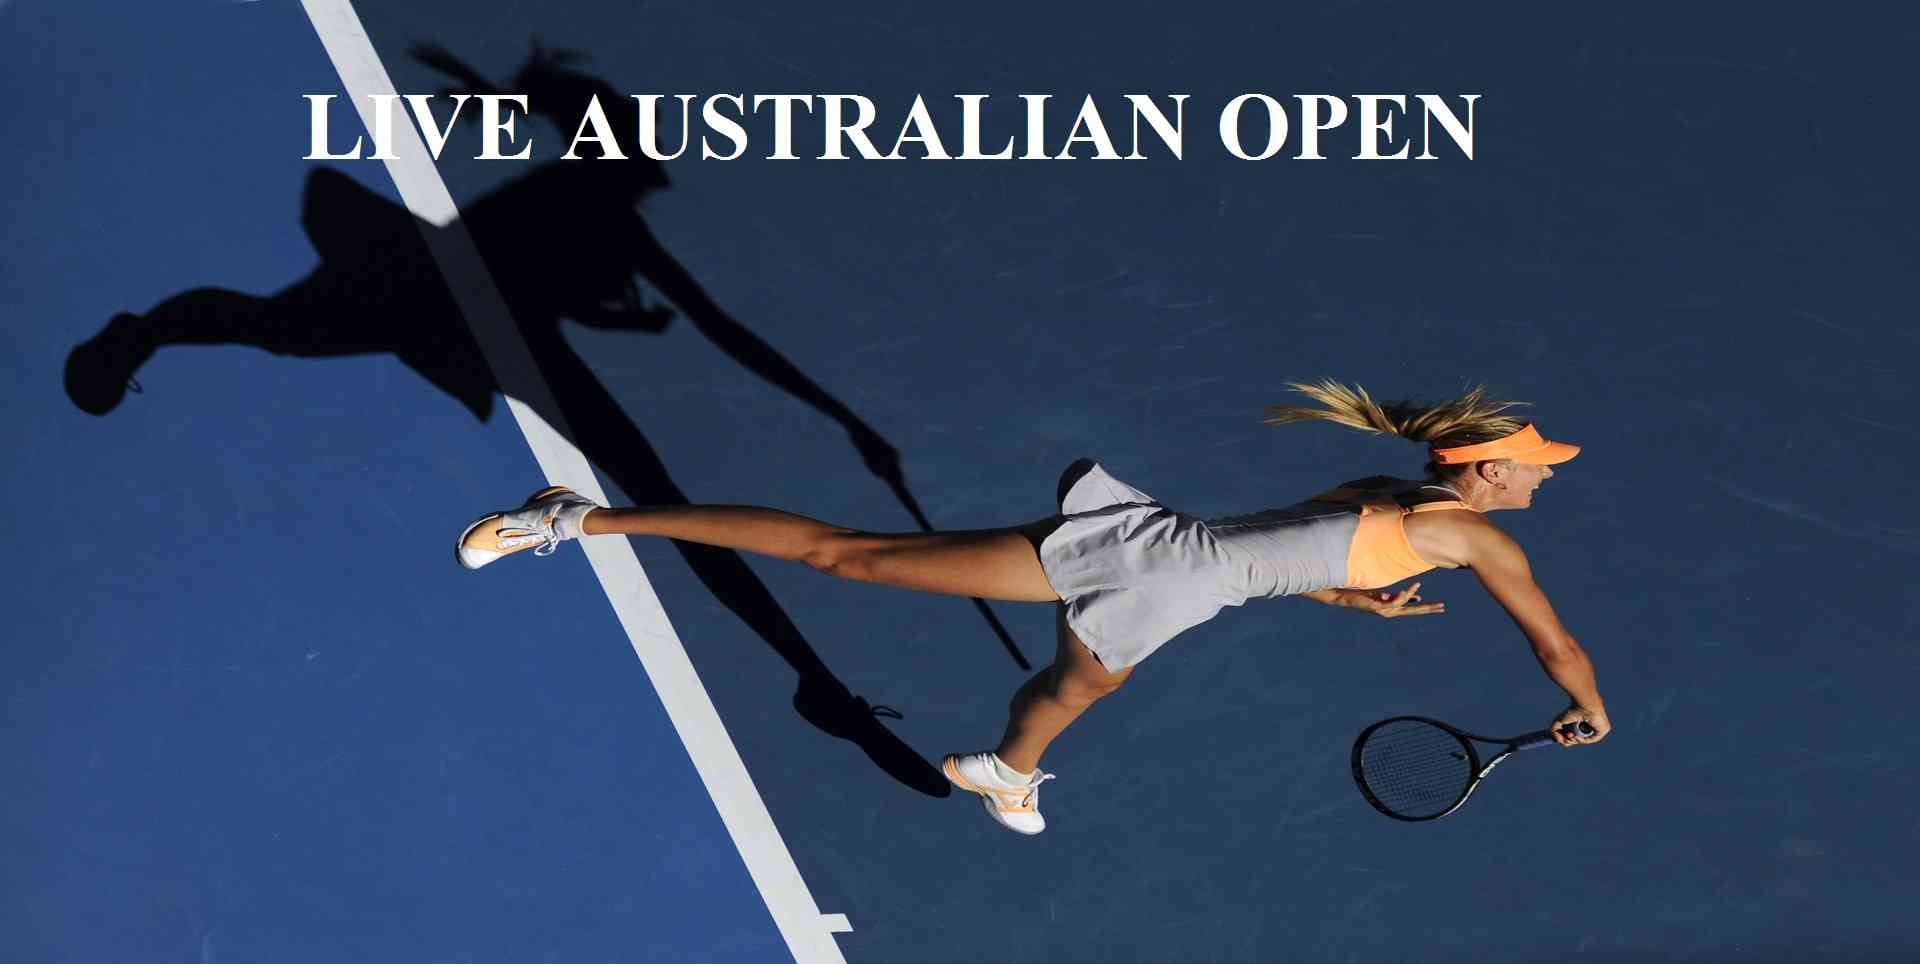 Watch 2017 Australian Open Tennis Opening Ceremony Live Streaming